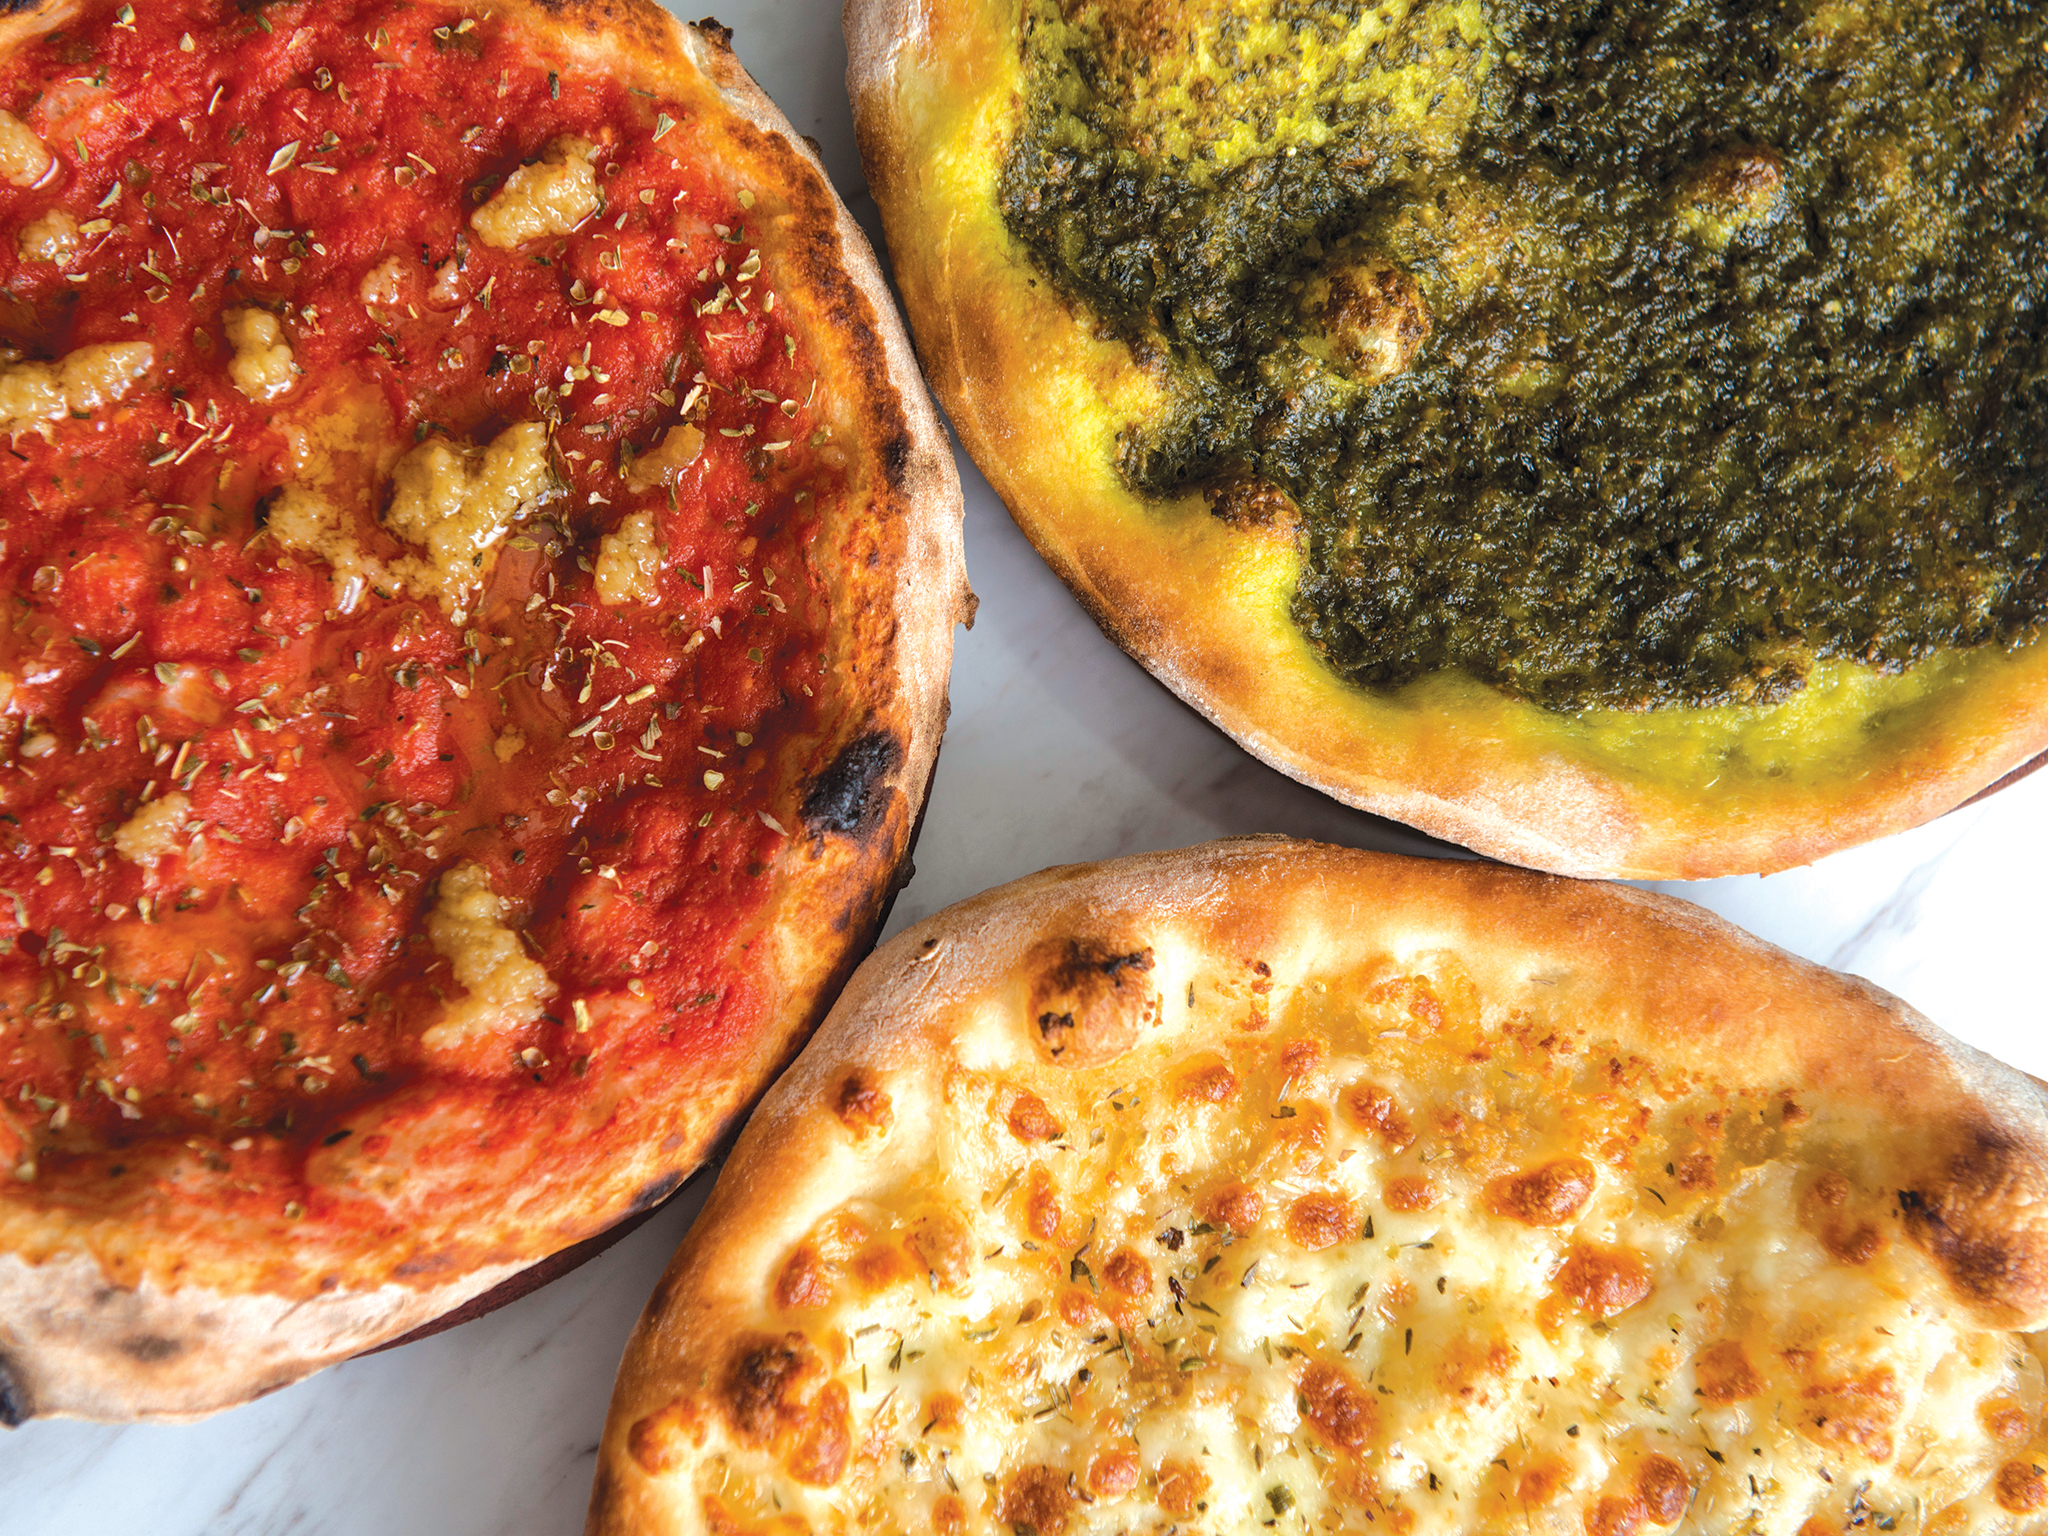 The best pizza restaurants in Hong Kong